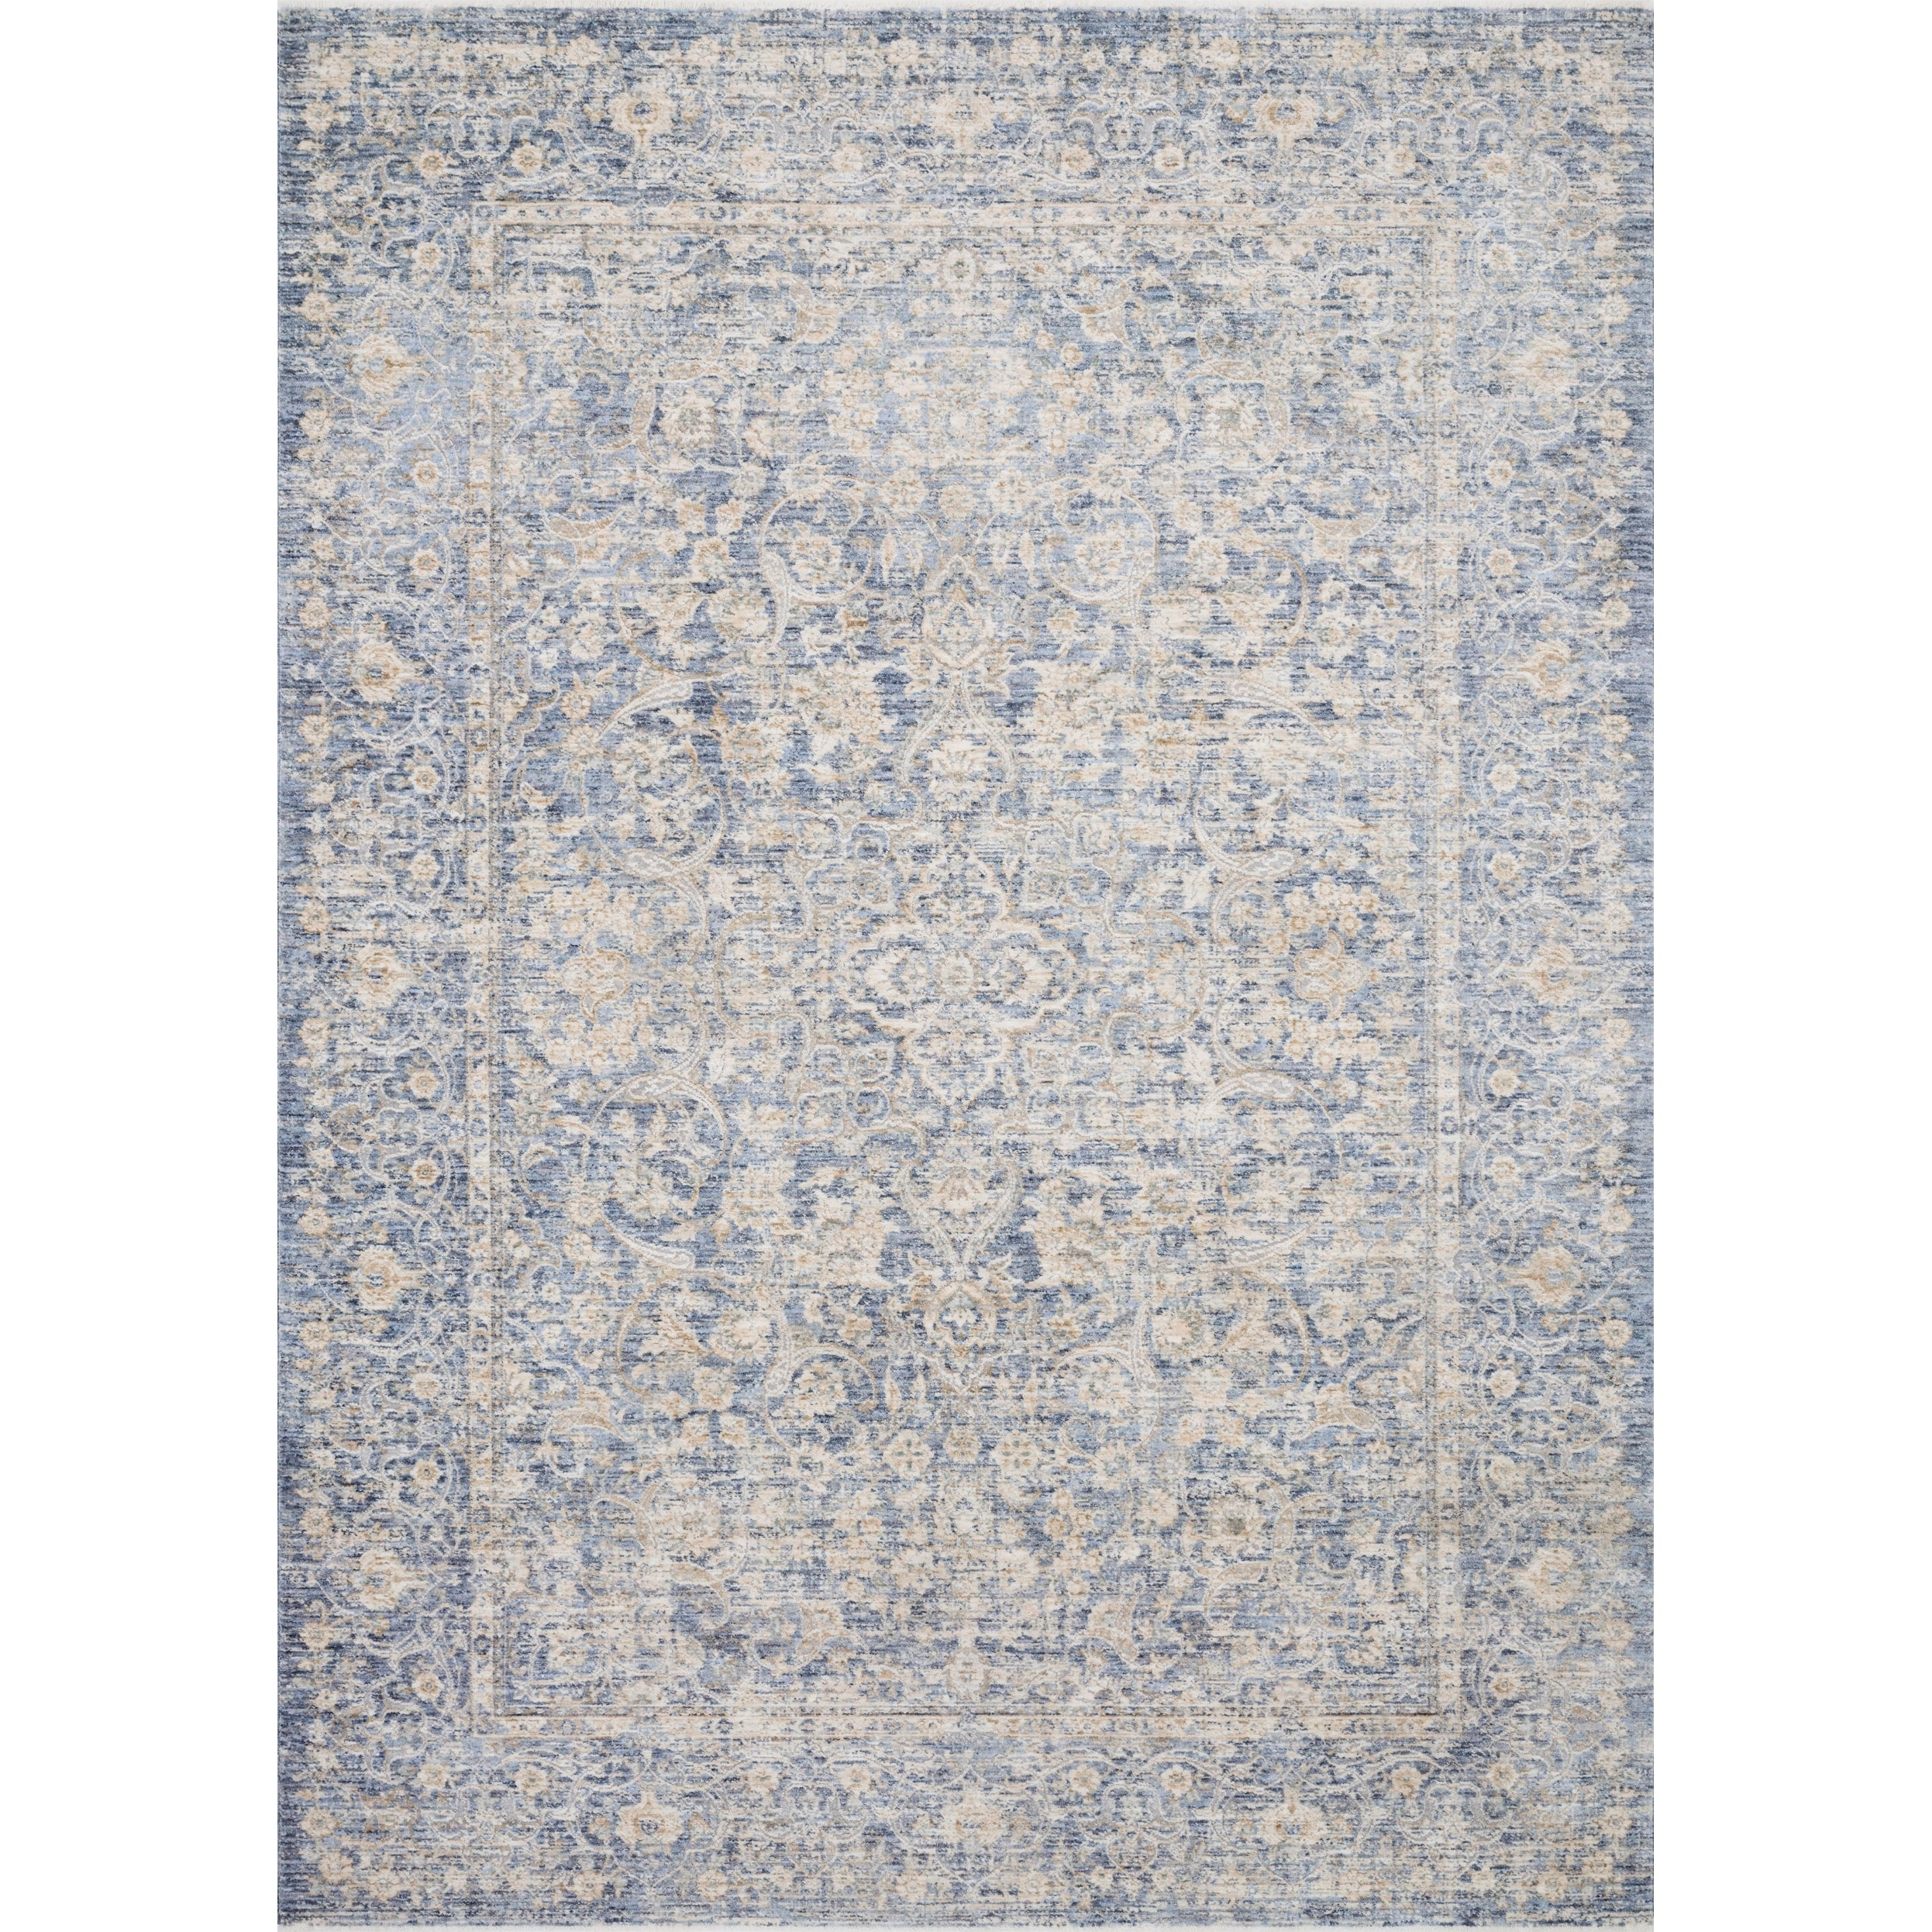 Classic Blue/ Gold Ornate Vintage Area Rug - 96 x 125 (Blue/Gold - 96 x 125)